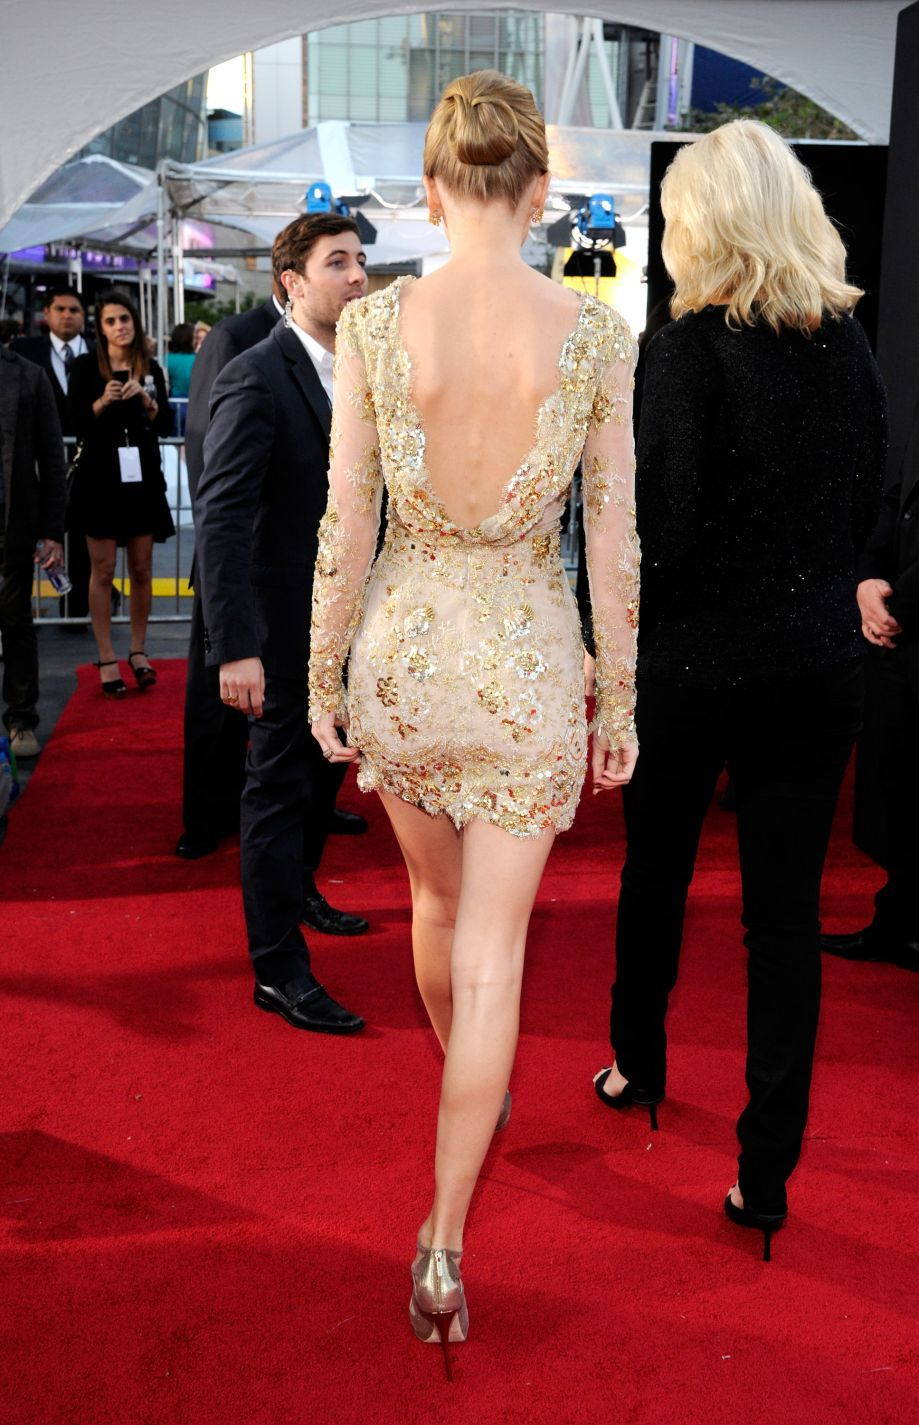 Taylor swift at american music awards wearing zuhair murad